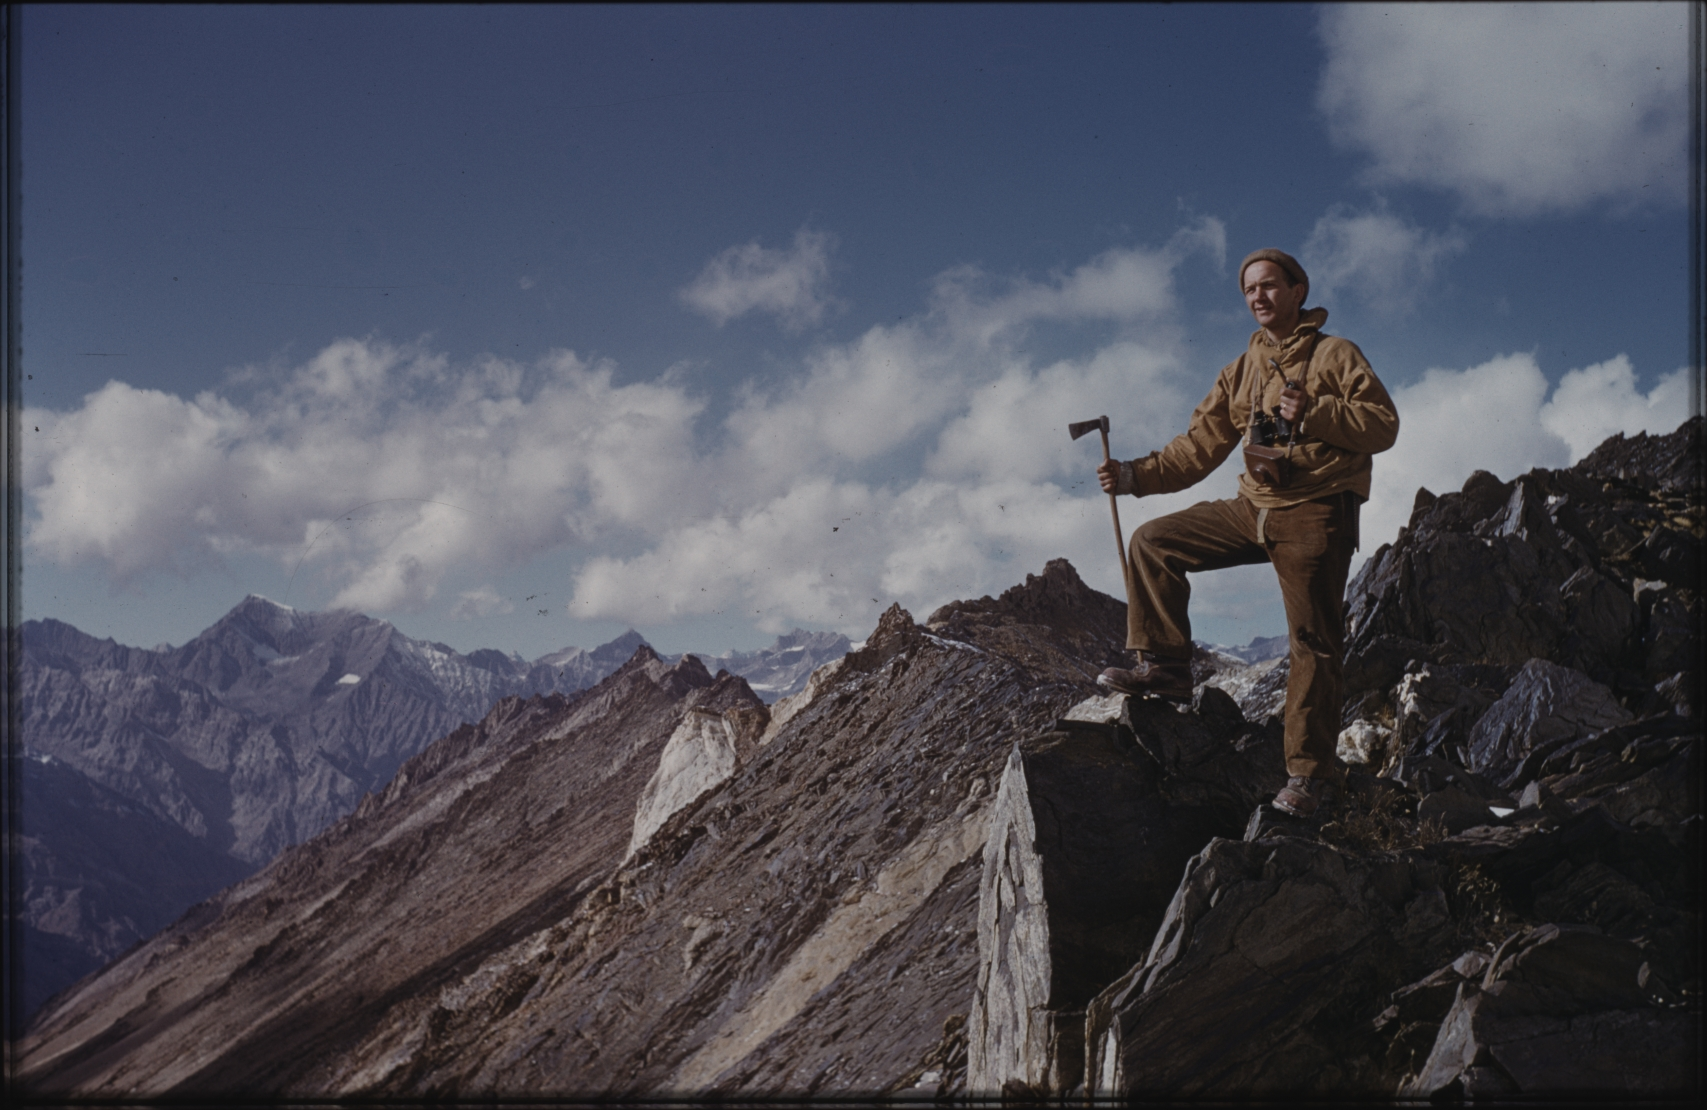 Klaus Ferdinand looking over the mountains. This his first expedition to Afghanistan came to have a decisive influence on his future career. The Henning Haslund-Christensen Memorial Expedition, 1953-'55. Photo: the Moesgaard Museum archives